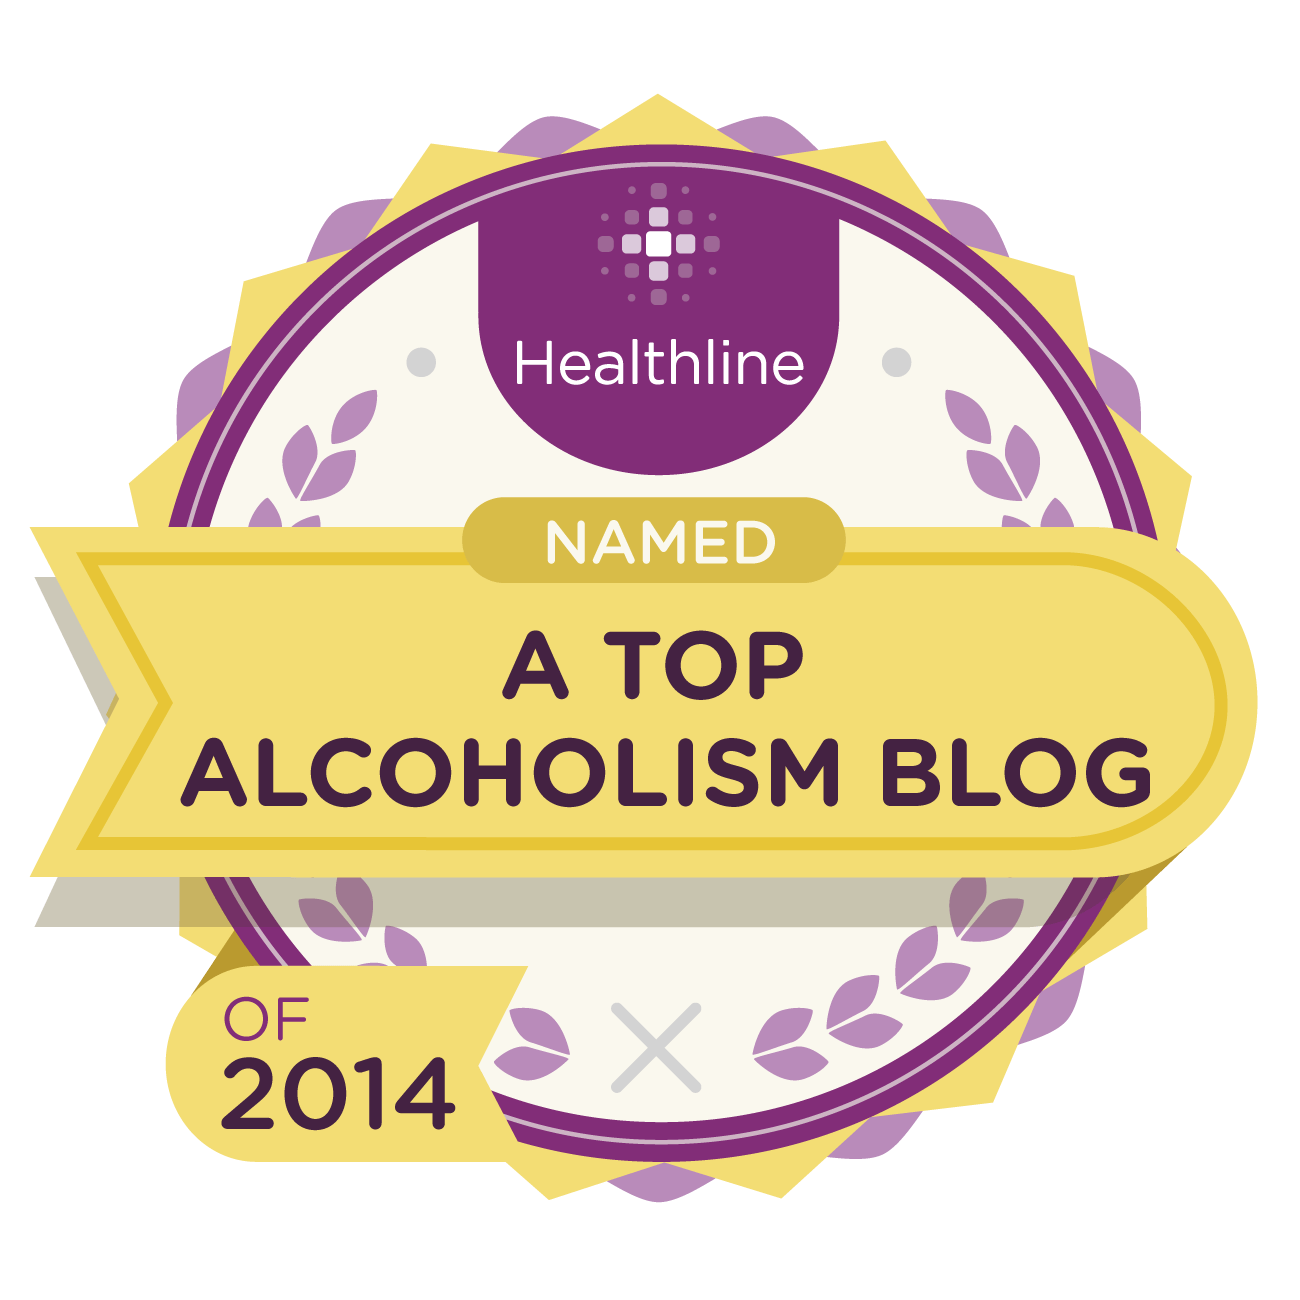 The 15 Best Alcoholism Health Blogs of 2014